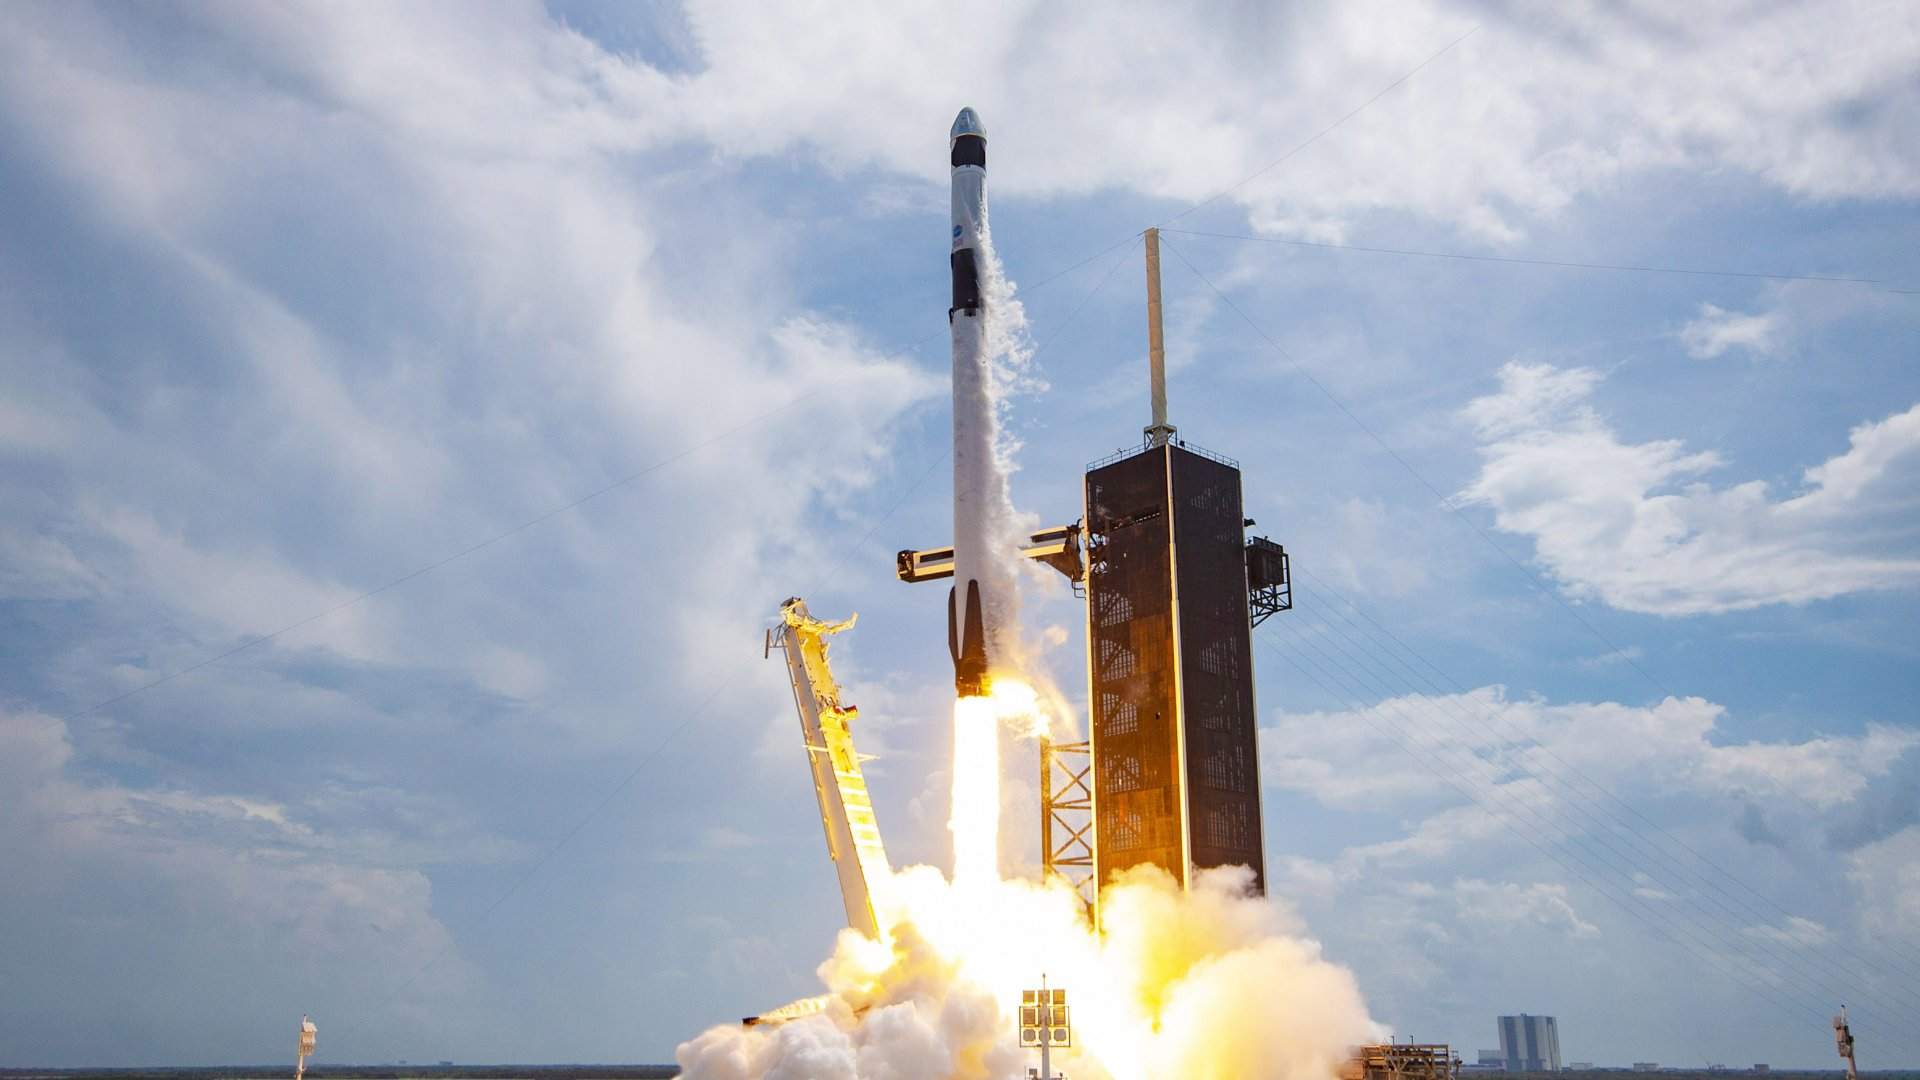 3 Lessons Every Business Can Learn From the SpaceX Launch